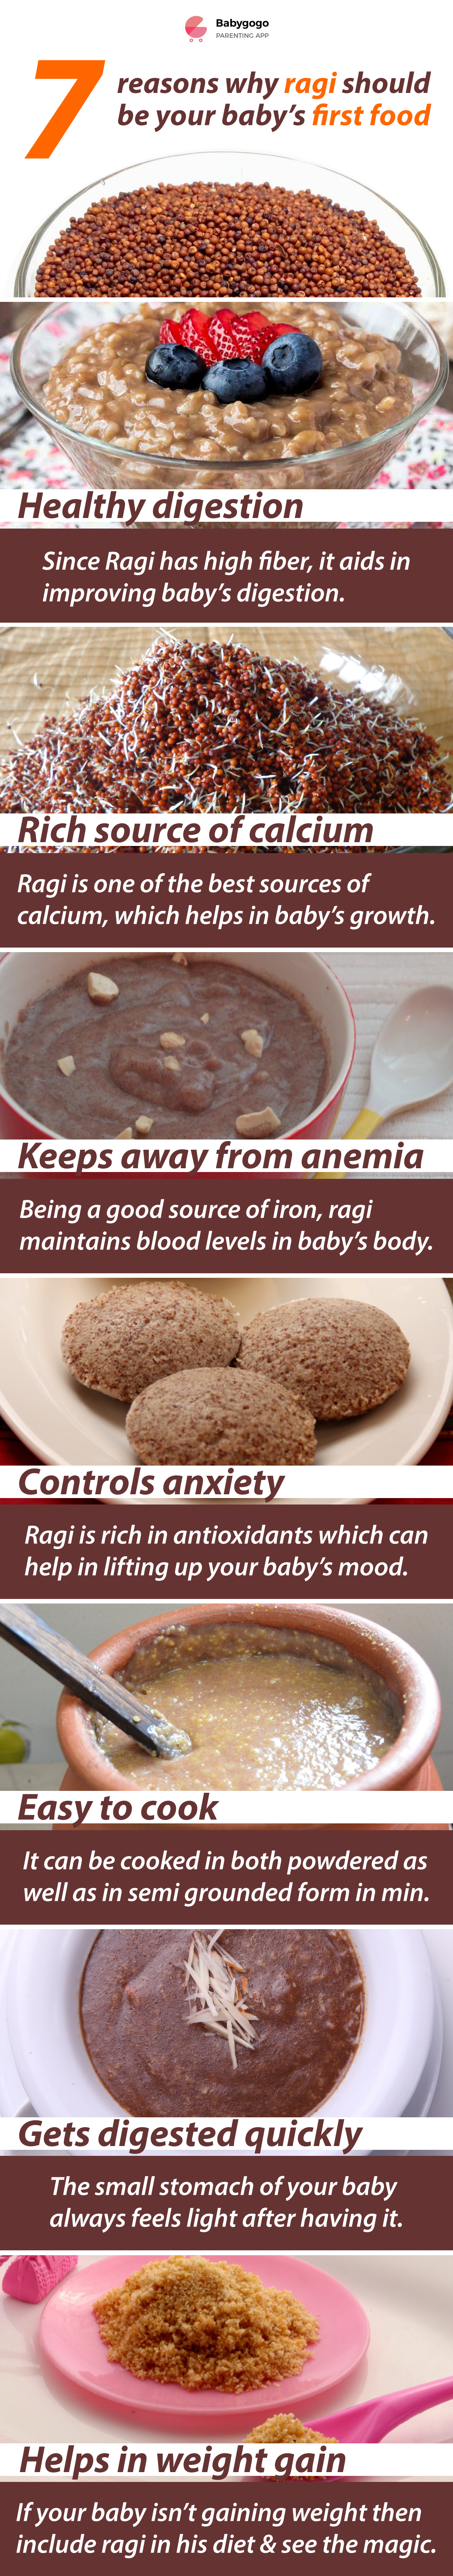 Ragi makes the healthiest and one of the best introductory foods for babies. #baby #food #parenting #motherhood #newmom #introducing #food